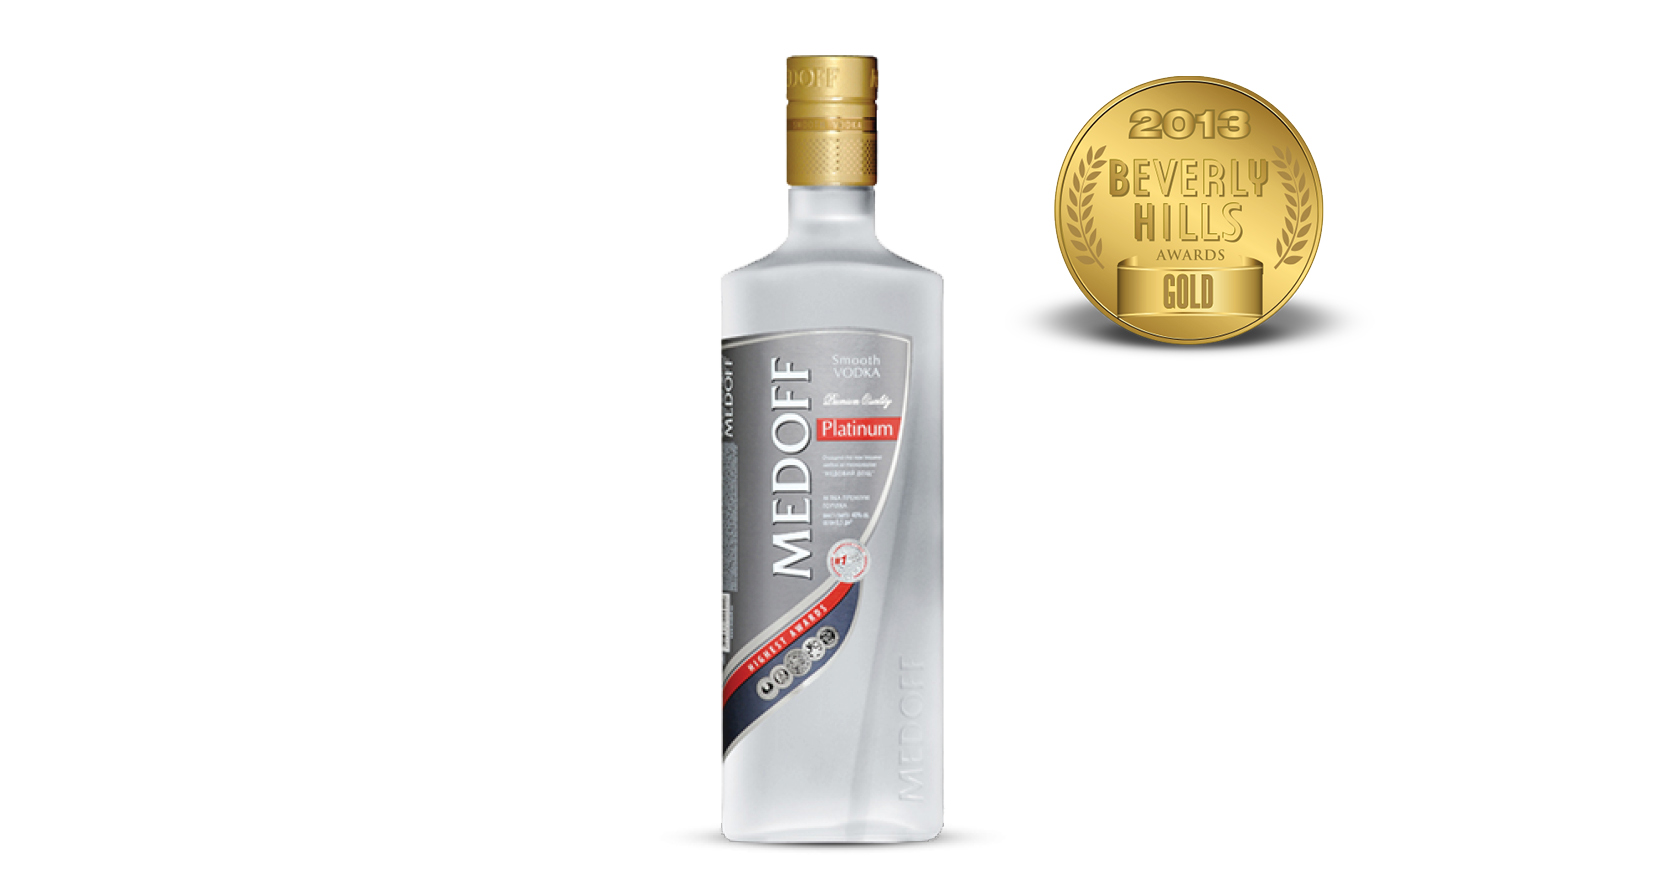 Medoff Platinum Vodka